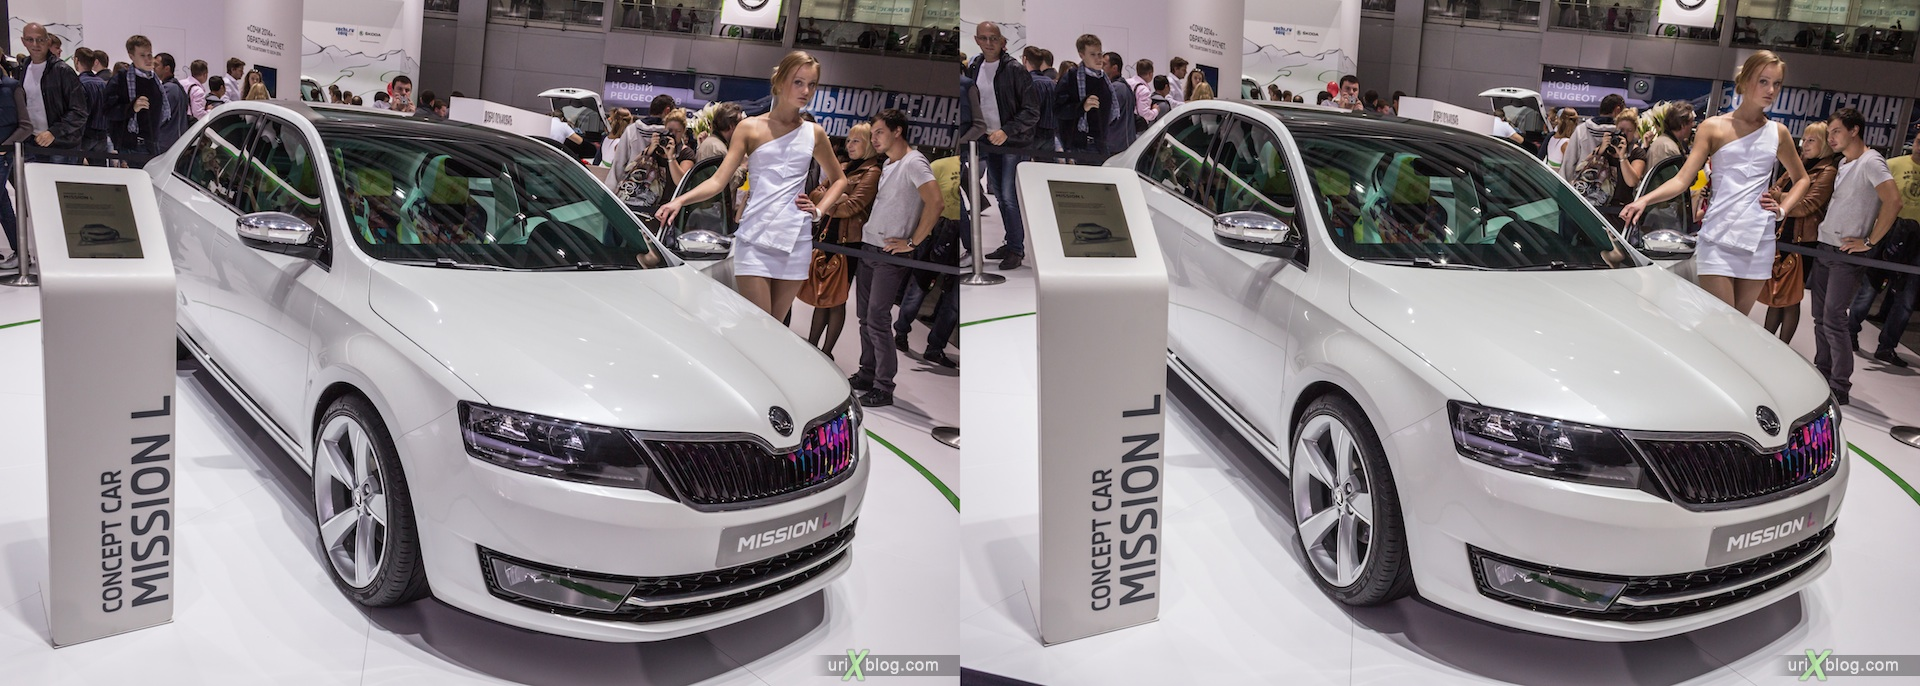 2012, Skoda Mission L, Moscow International Automobile Salon, auto show, 3D, stereo pair, cross-eyed, crossview